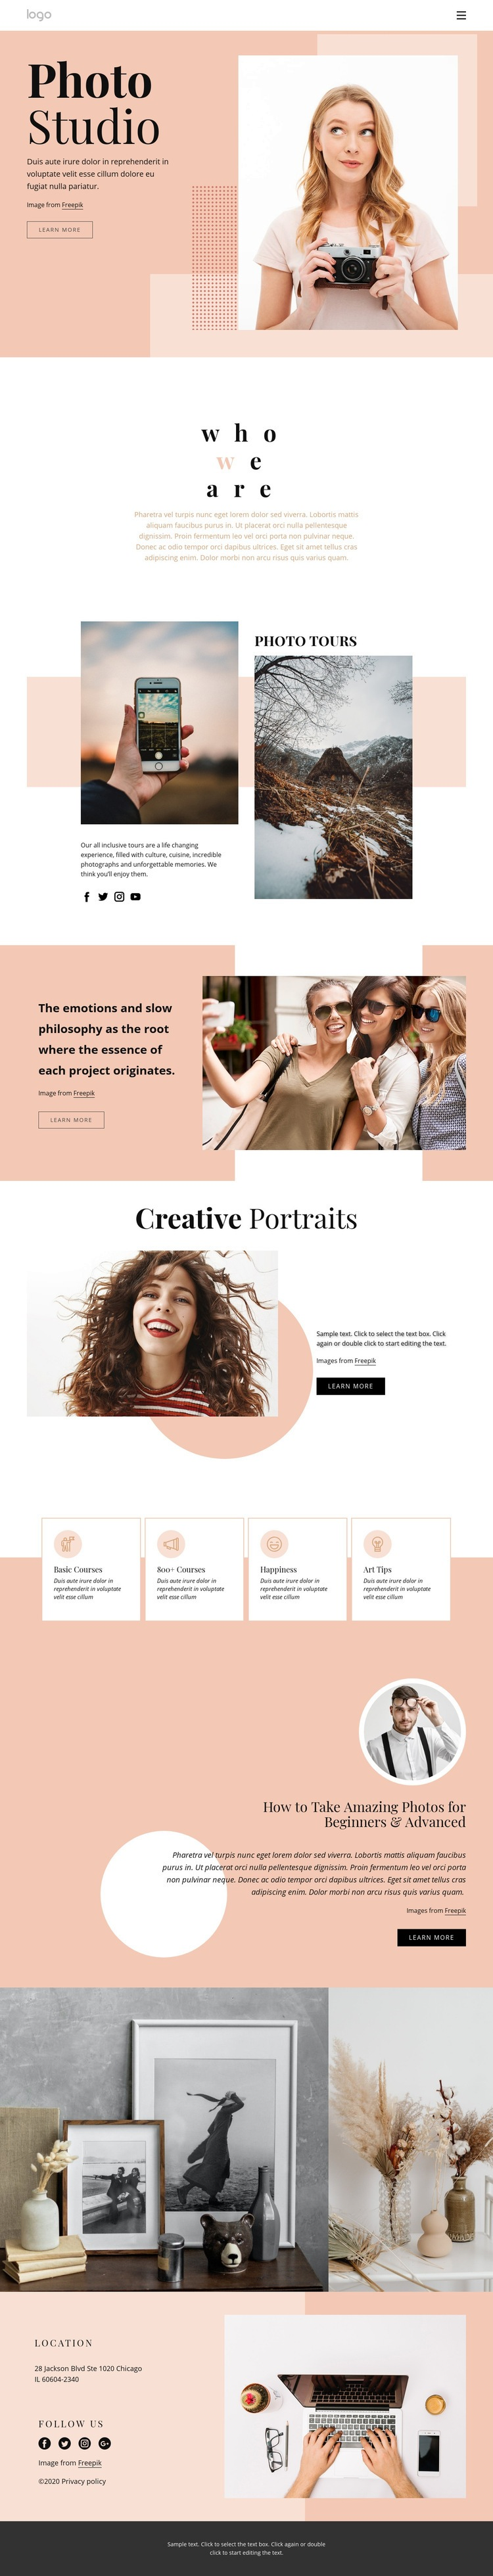 Photography courses Web Page Design